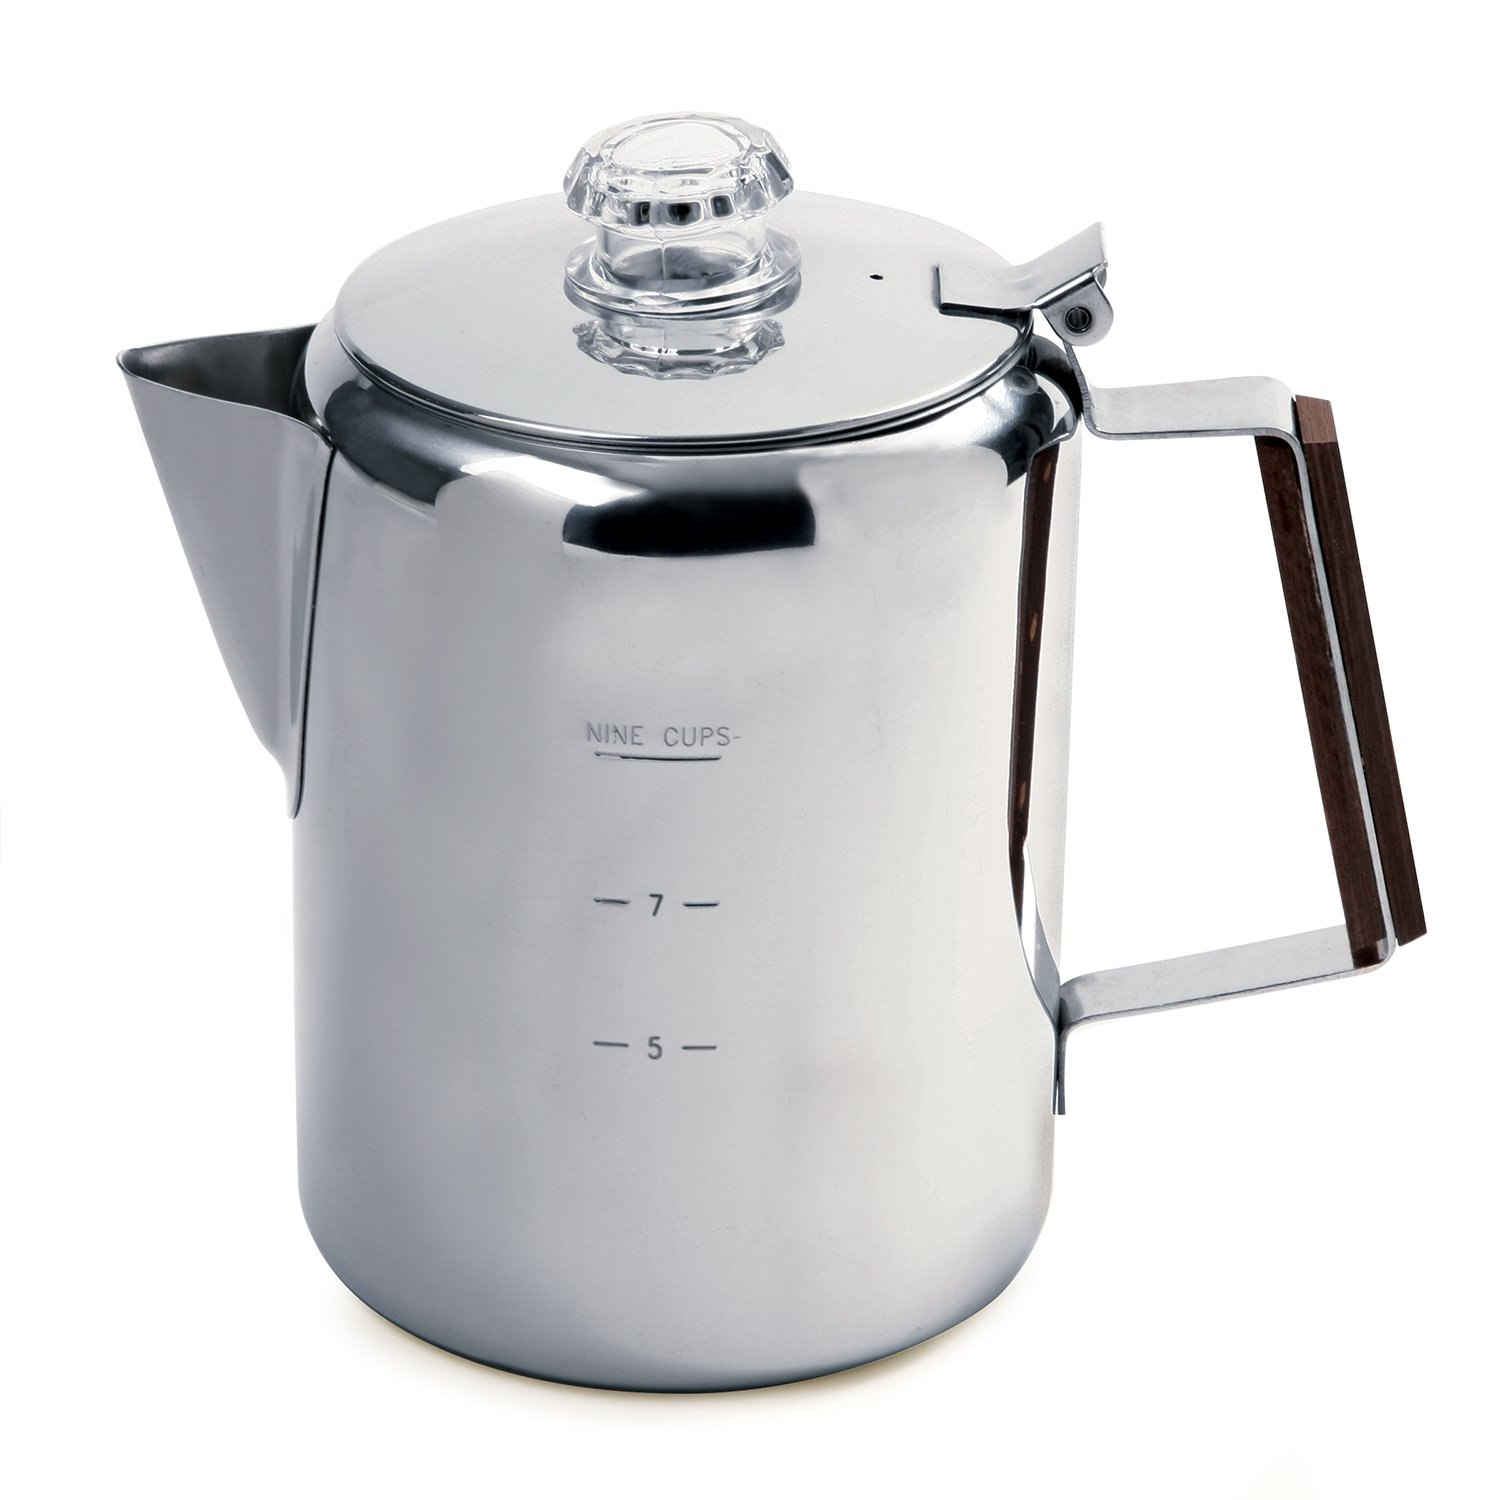 Norpro Stainless Steel 9-Cup Percolator by Norpro